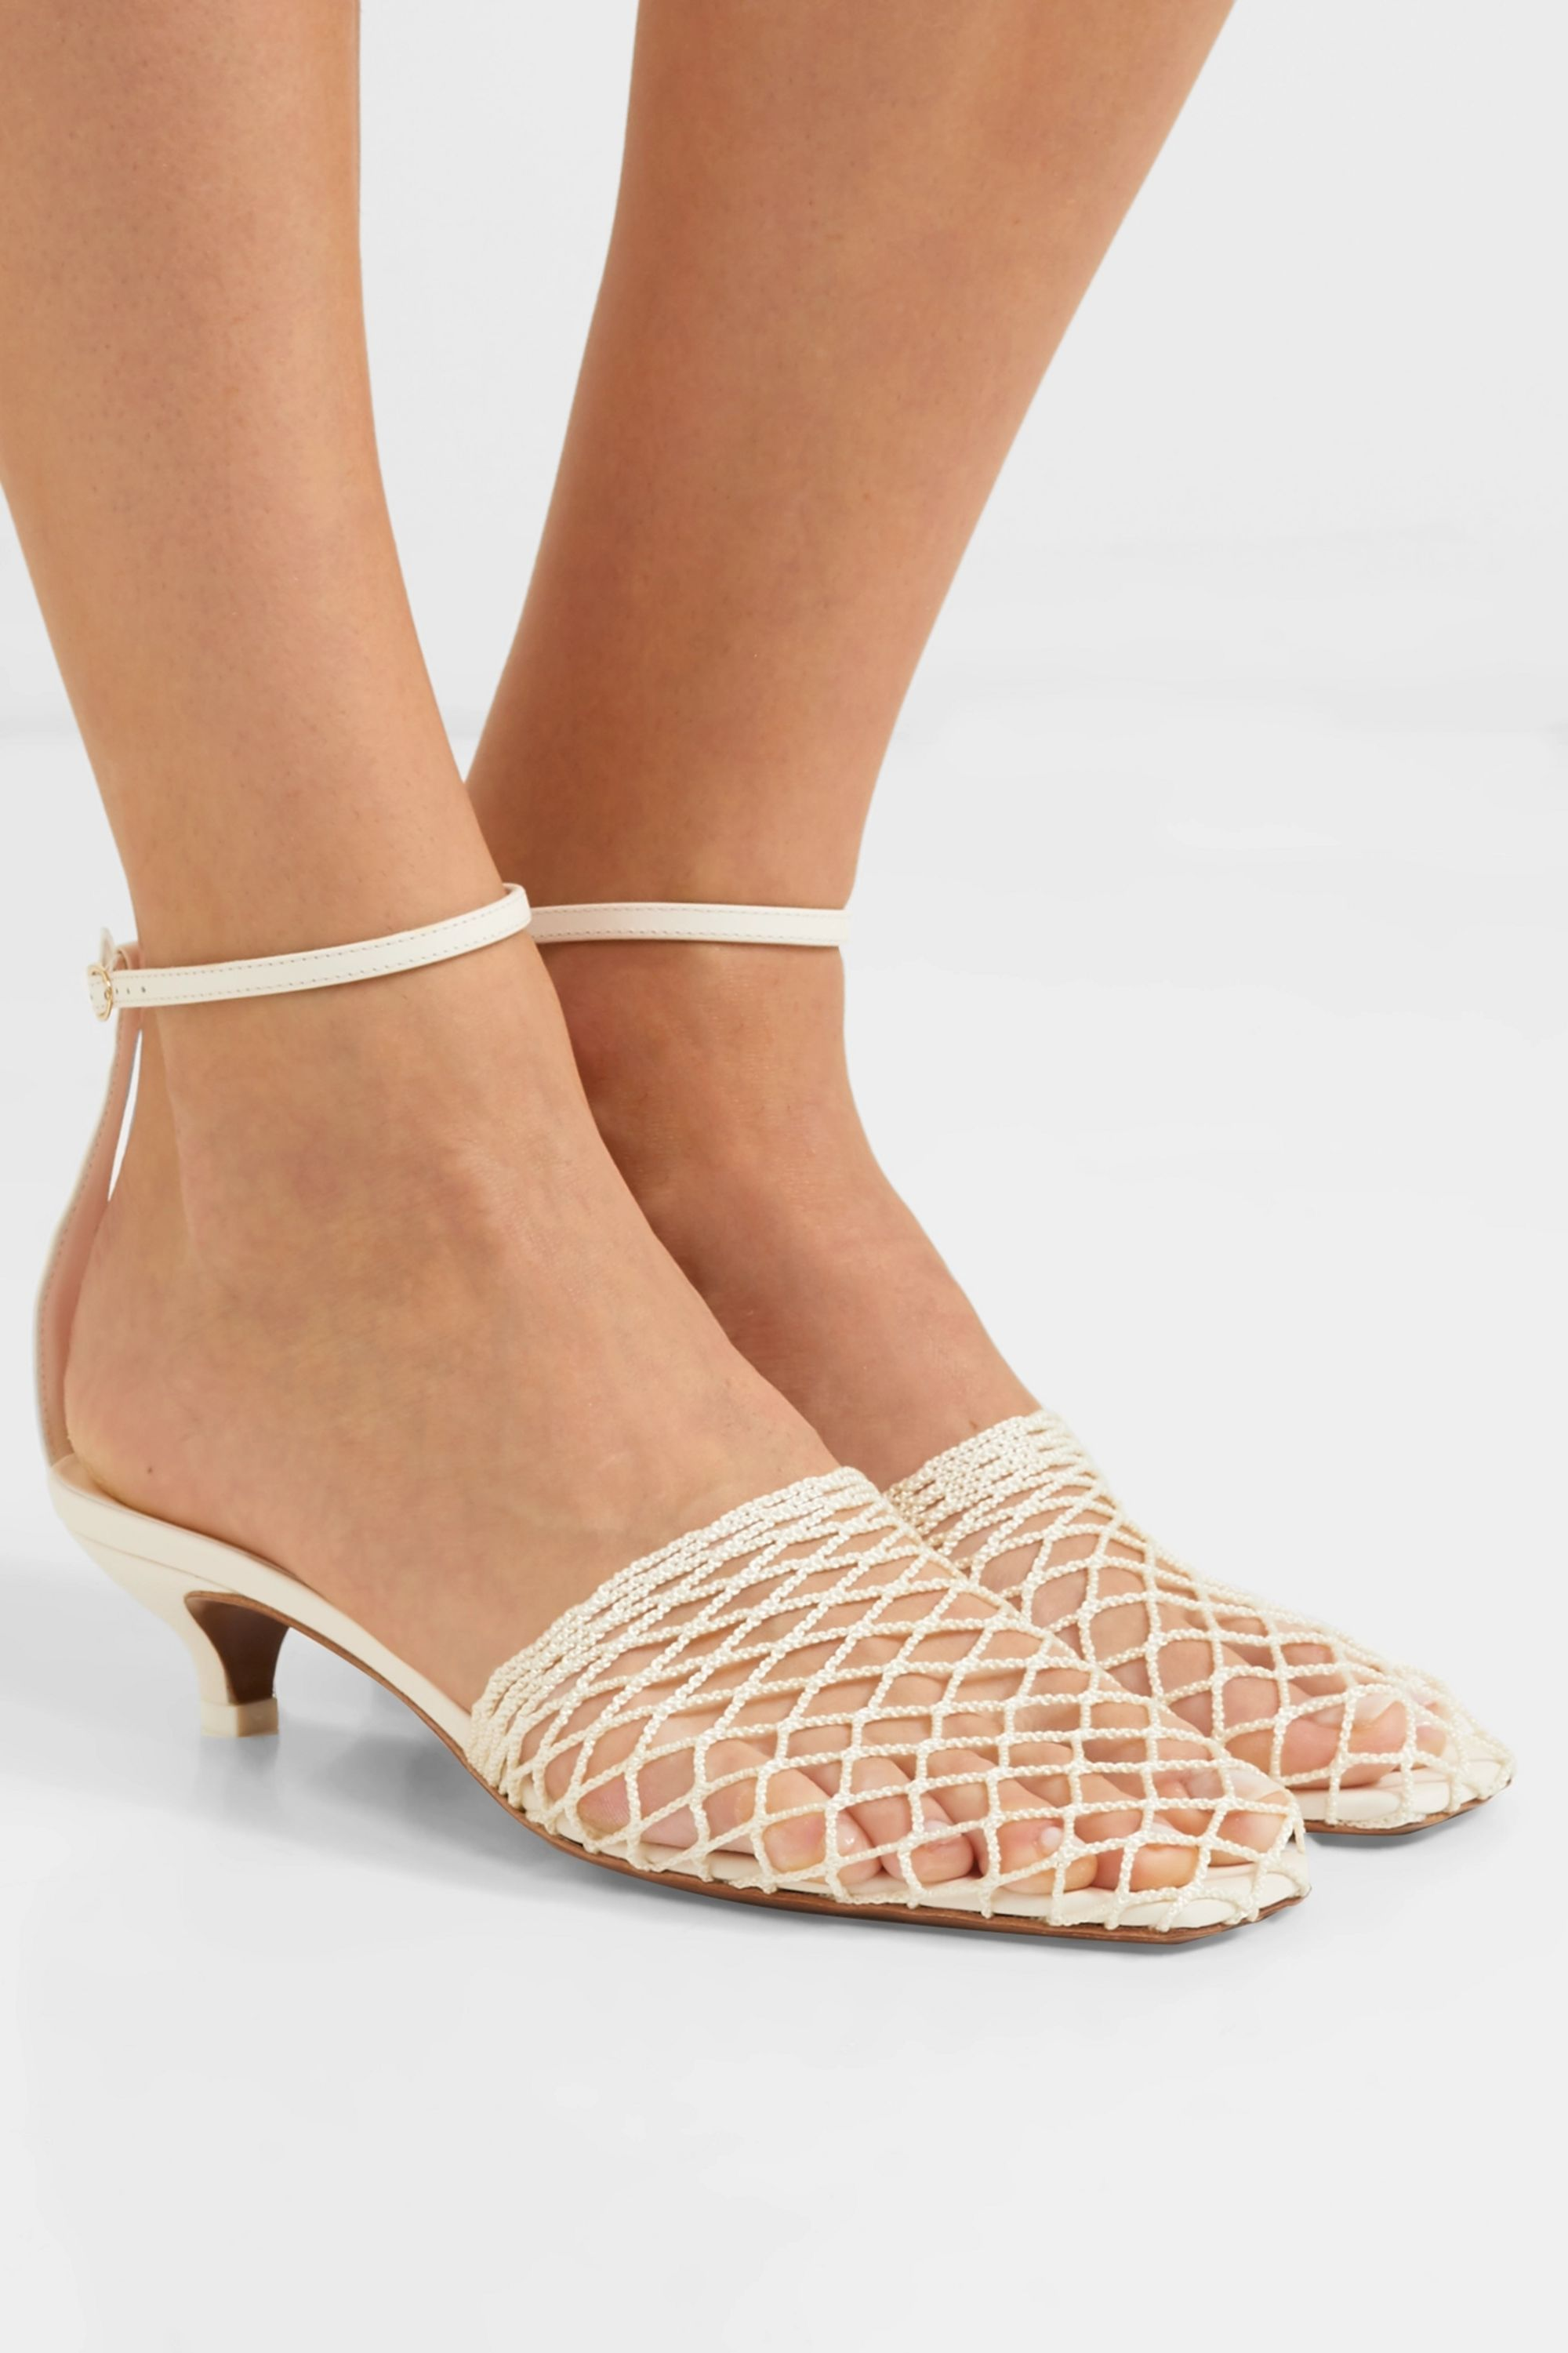 Neous Acantho crochet and leather pumps